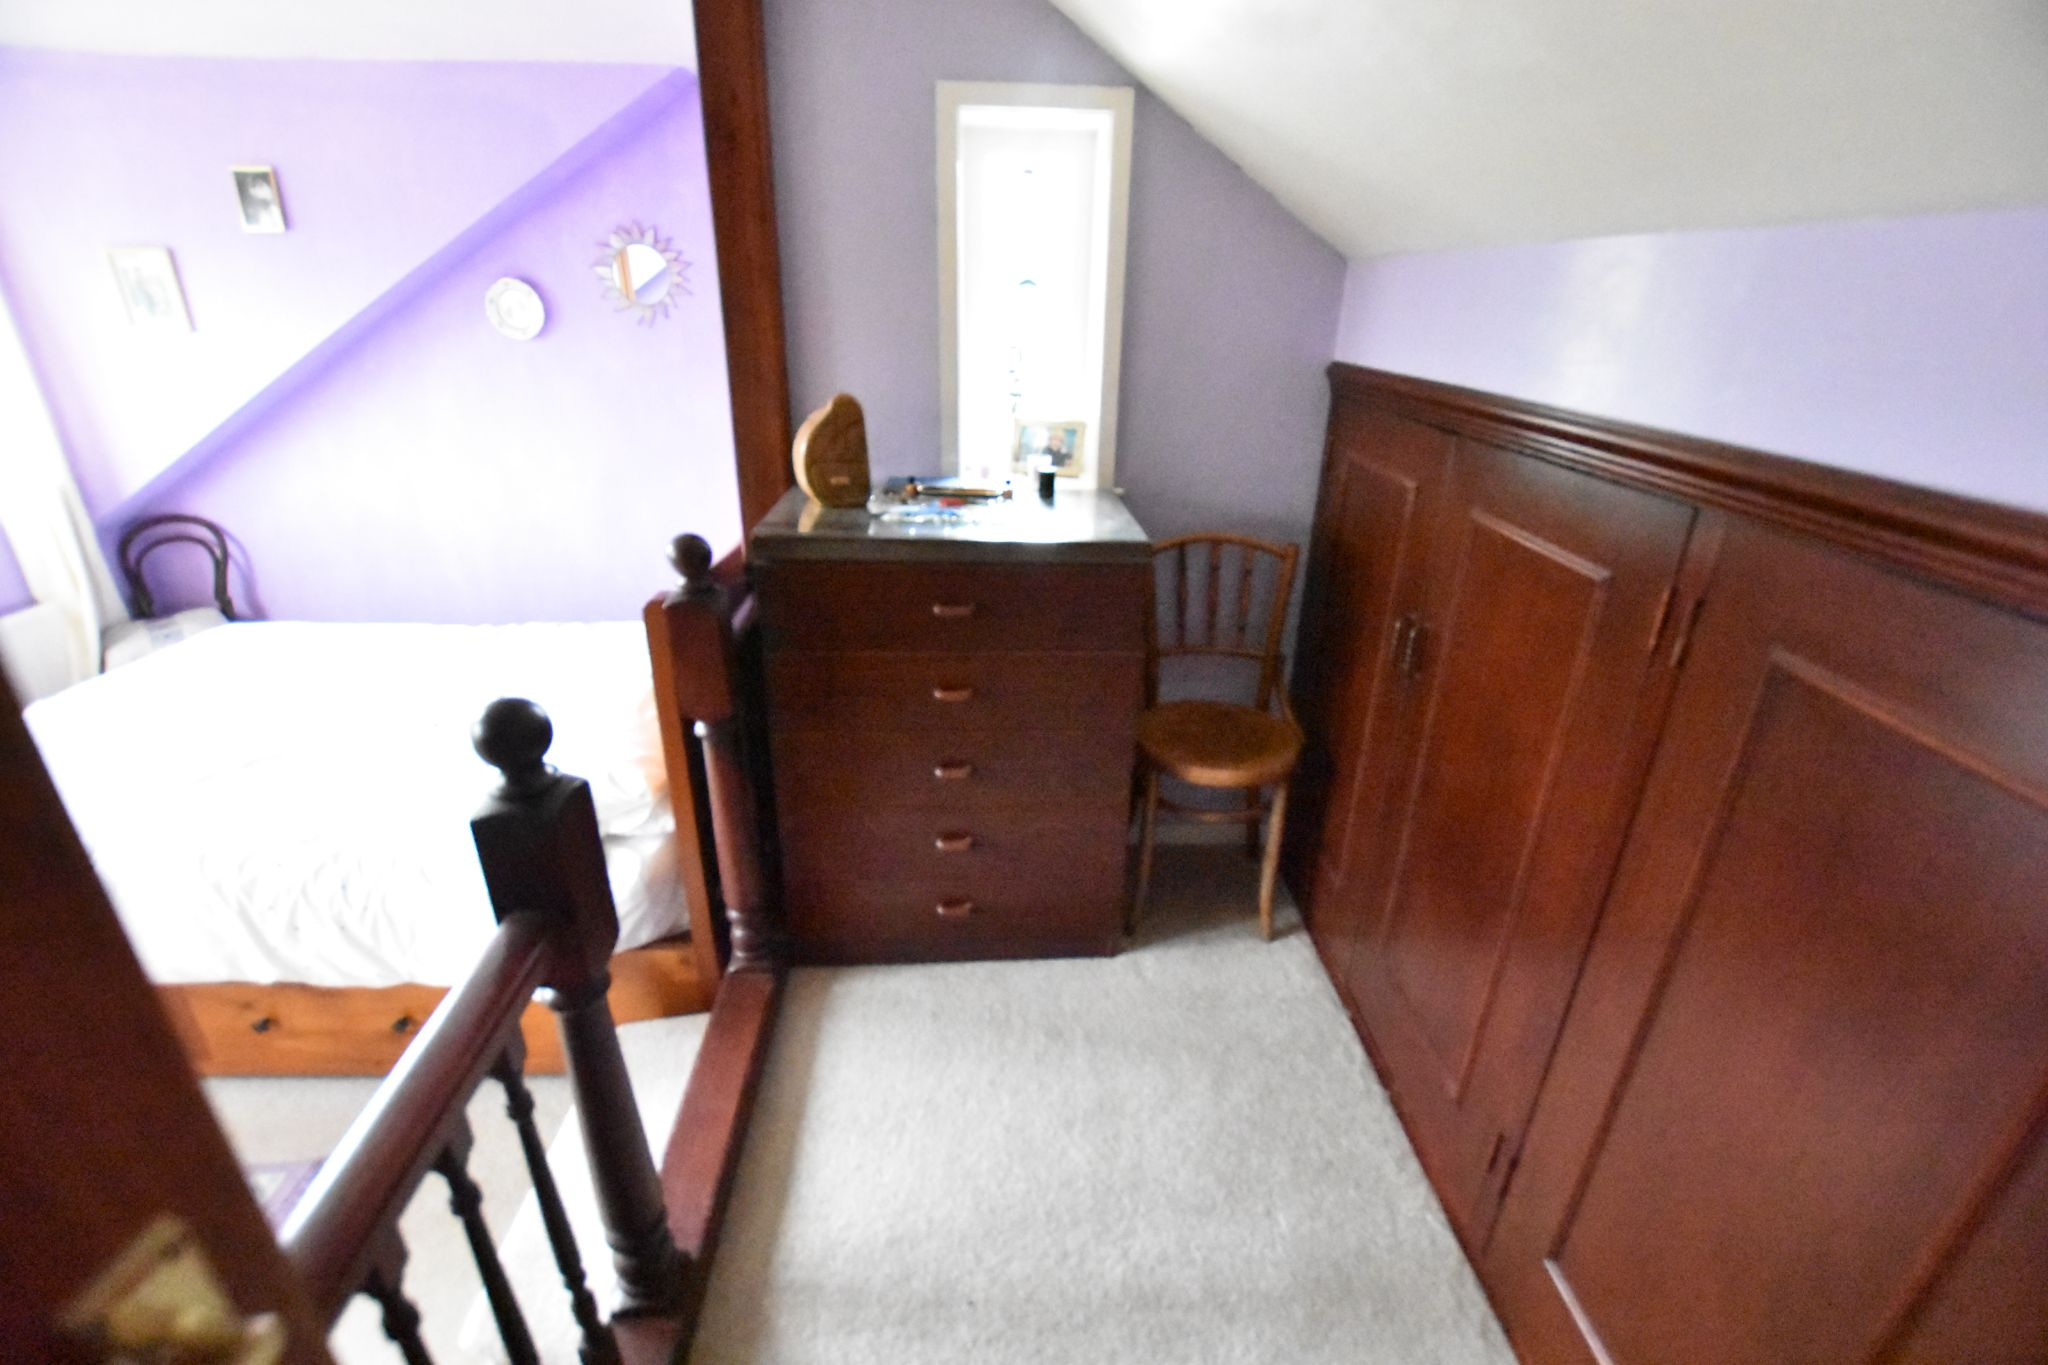 Image 4 of 4 of BEDROOM 2, on Accommodation Comprising for